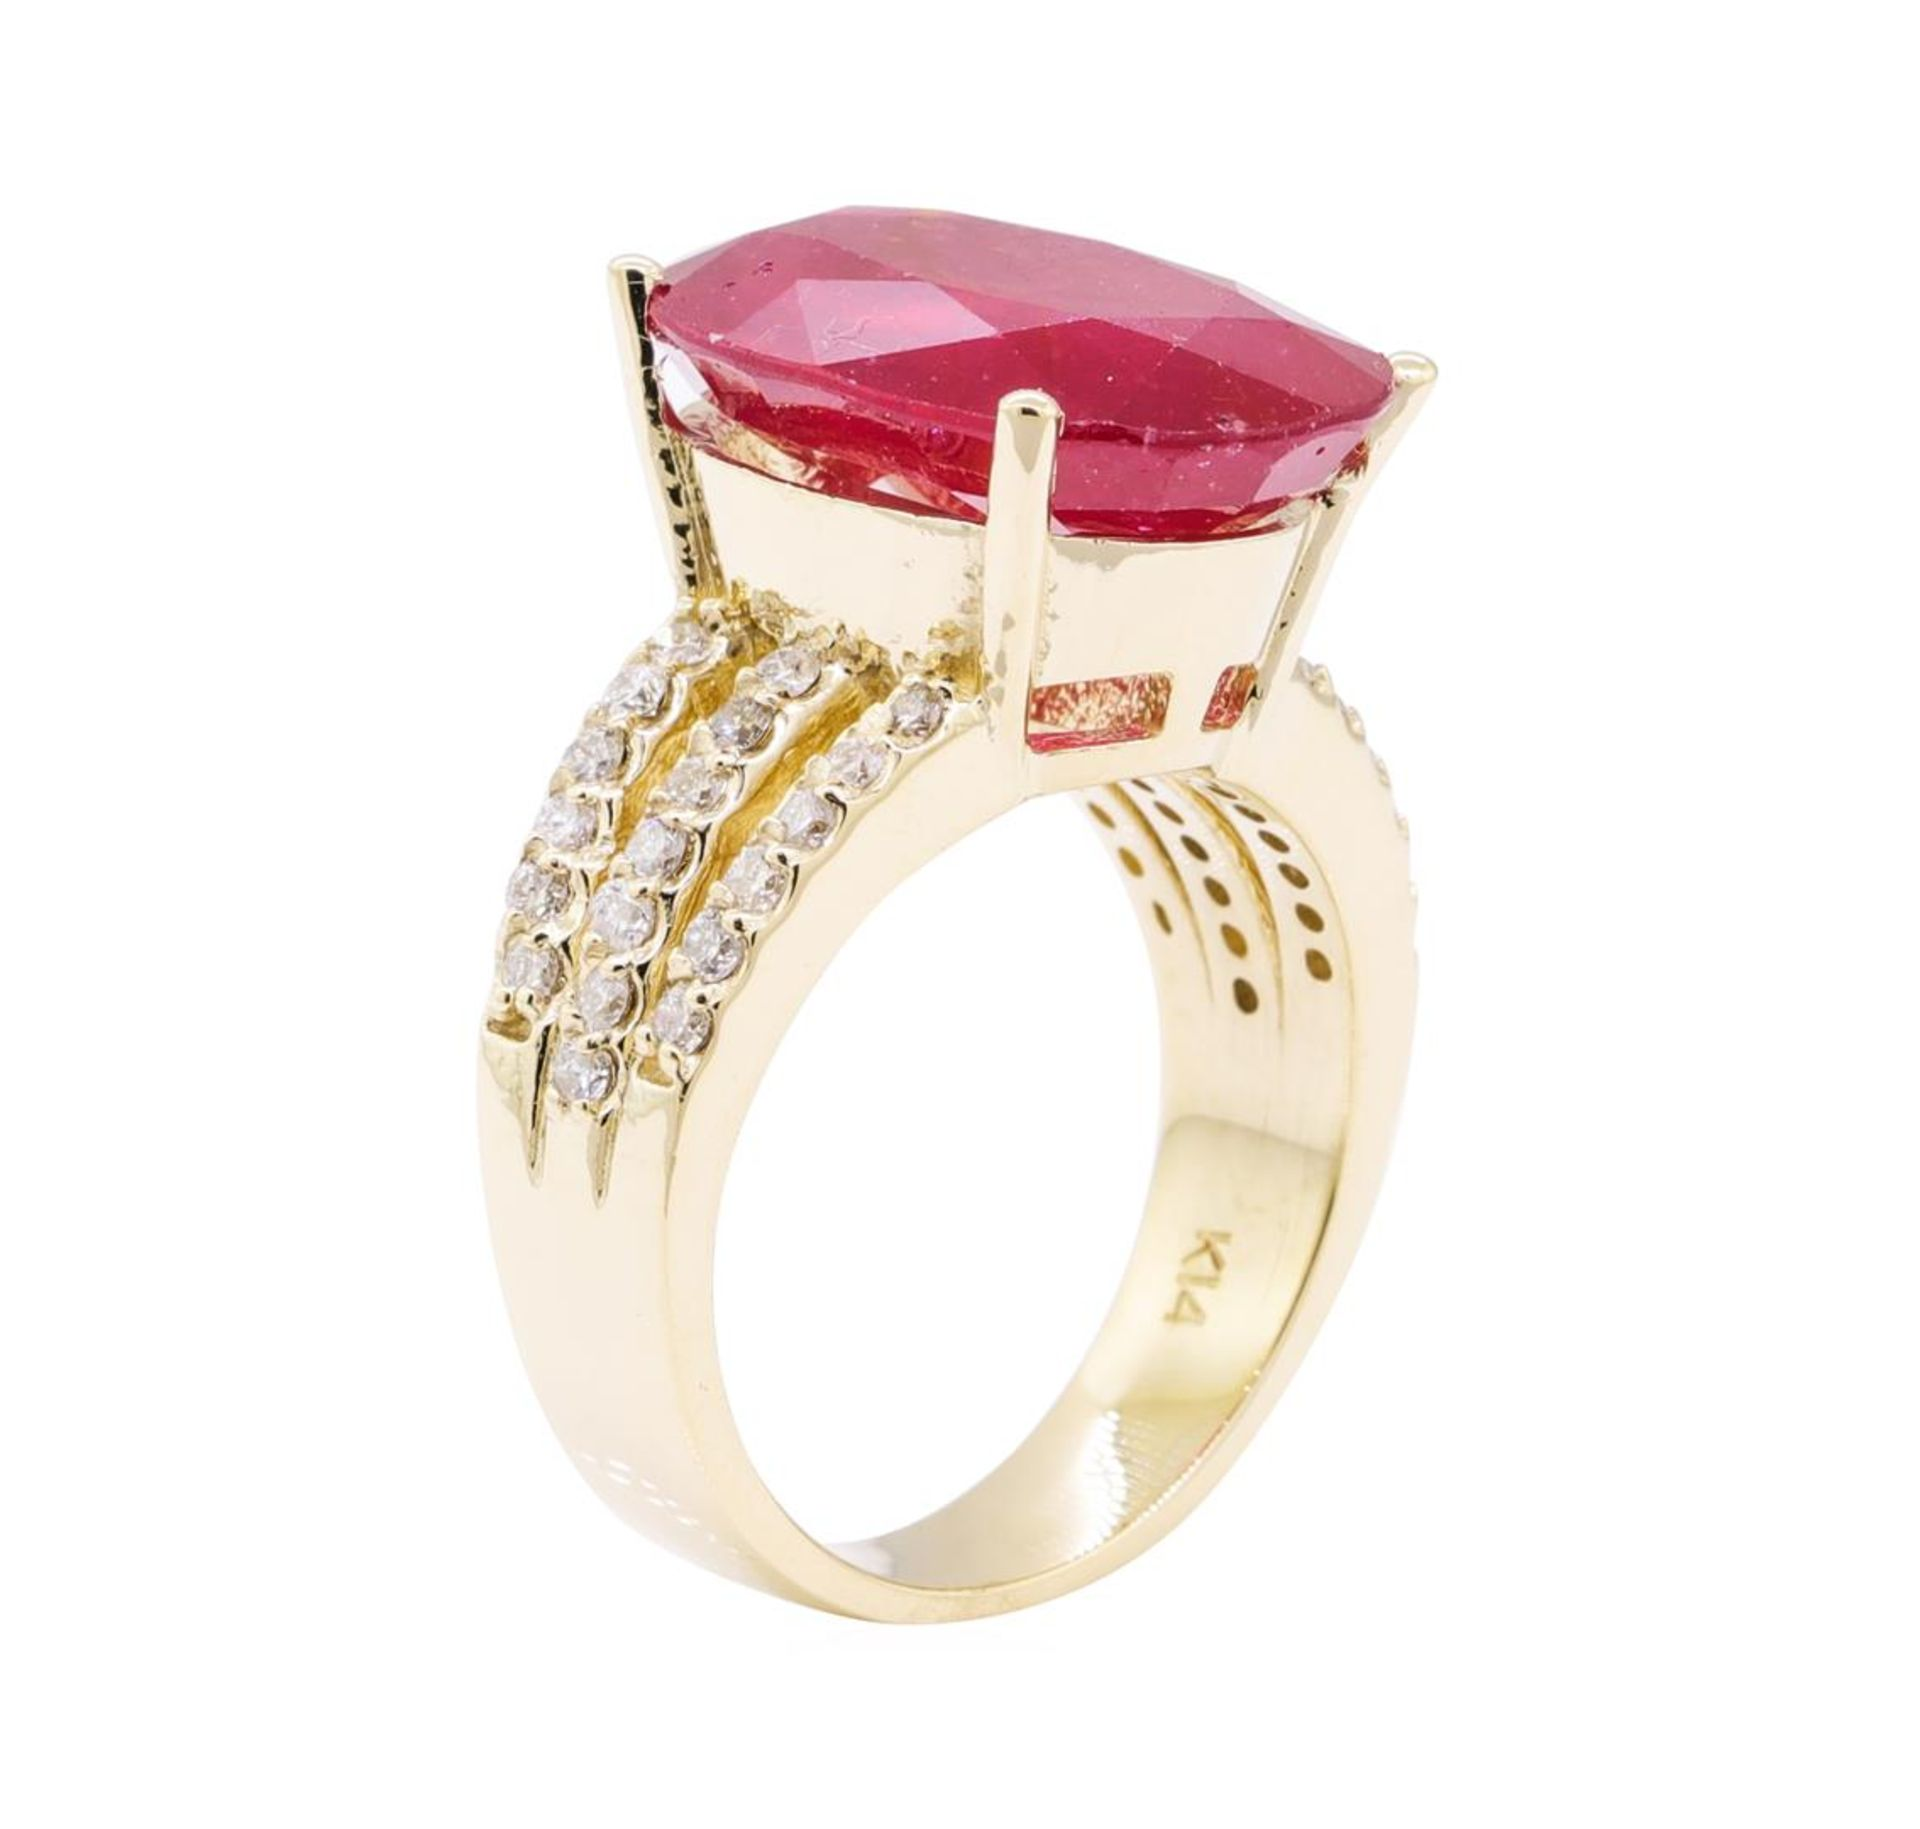 11.80 ctw Ruby And Diamond Ring - 14KT Yellow Gold - Image 4 of 5